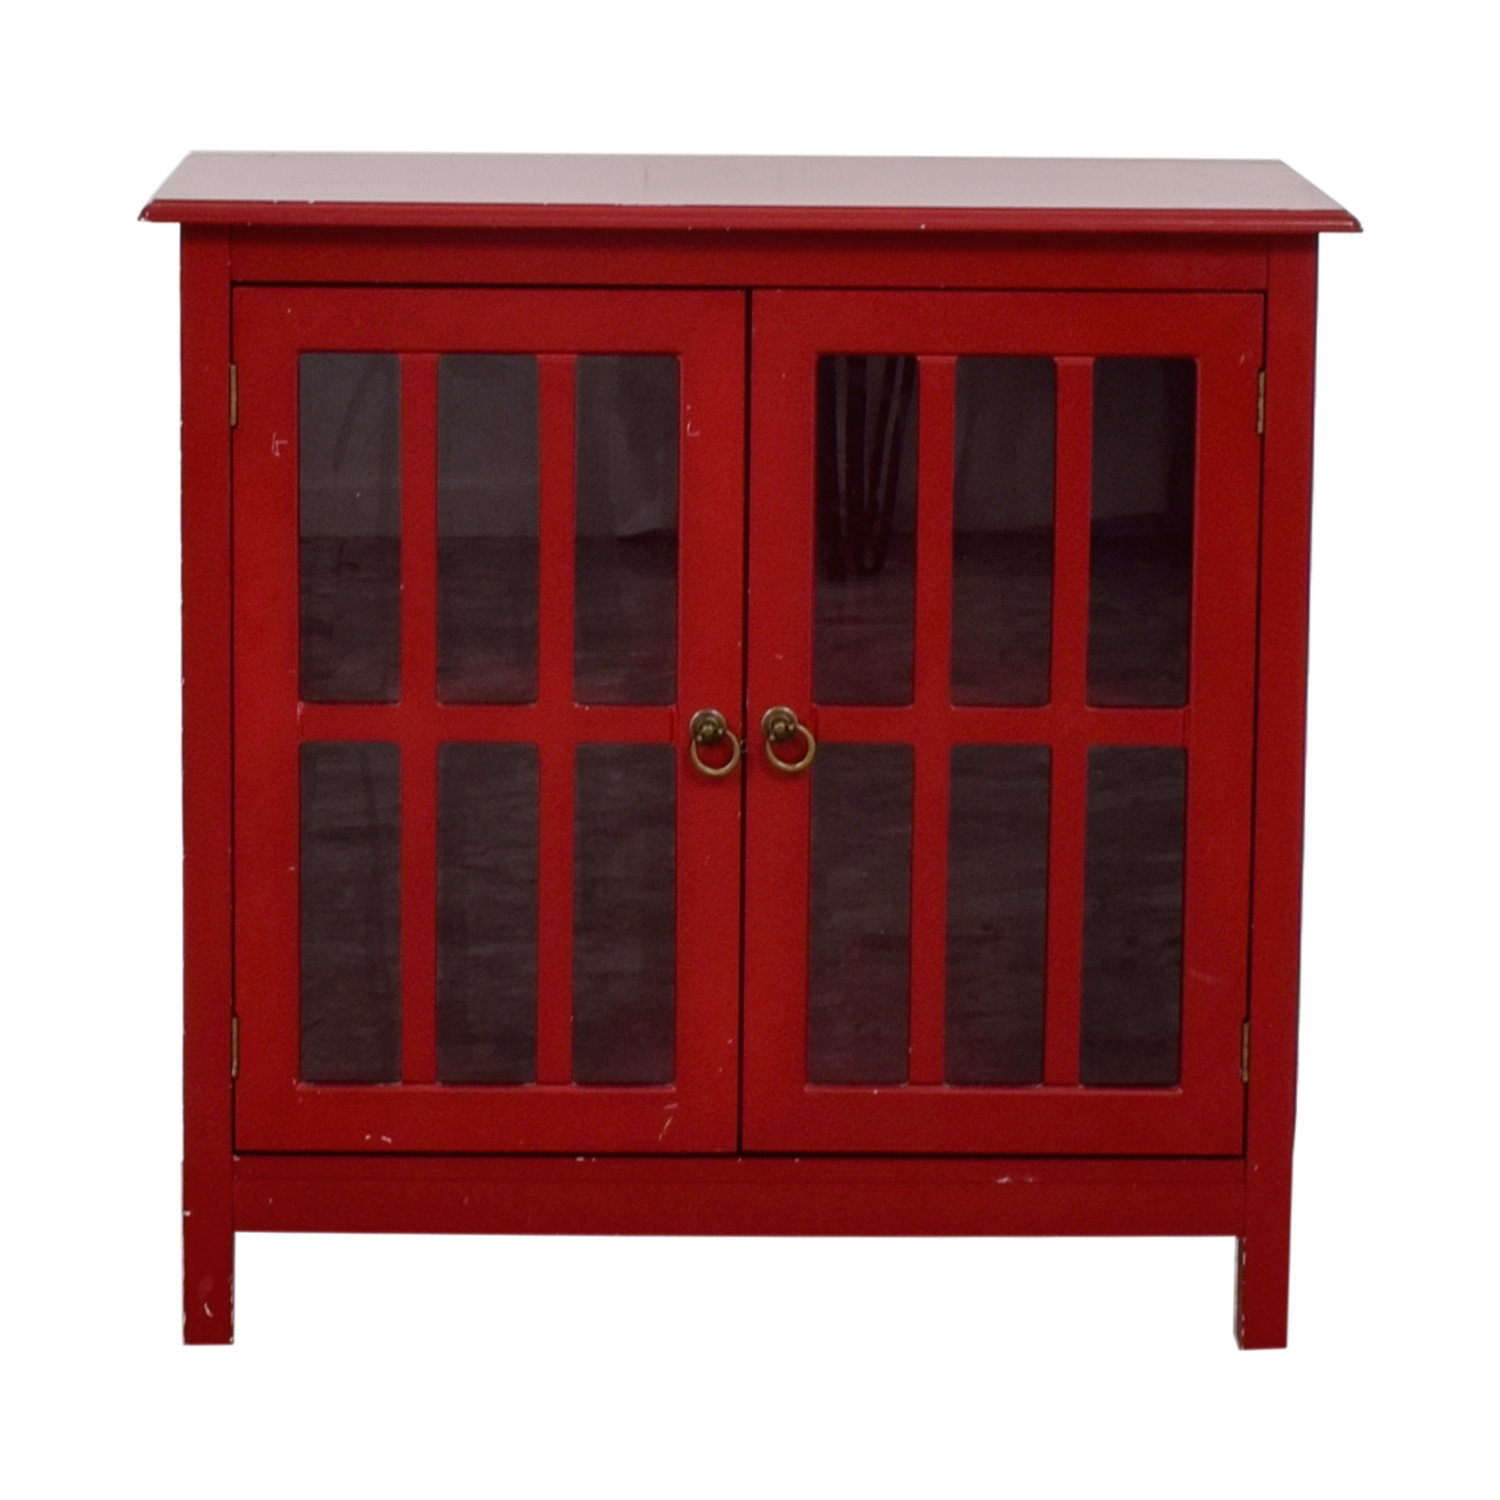 Double Door Glass Red Cabinet for sale